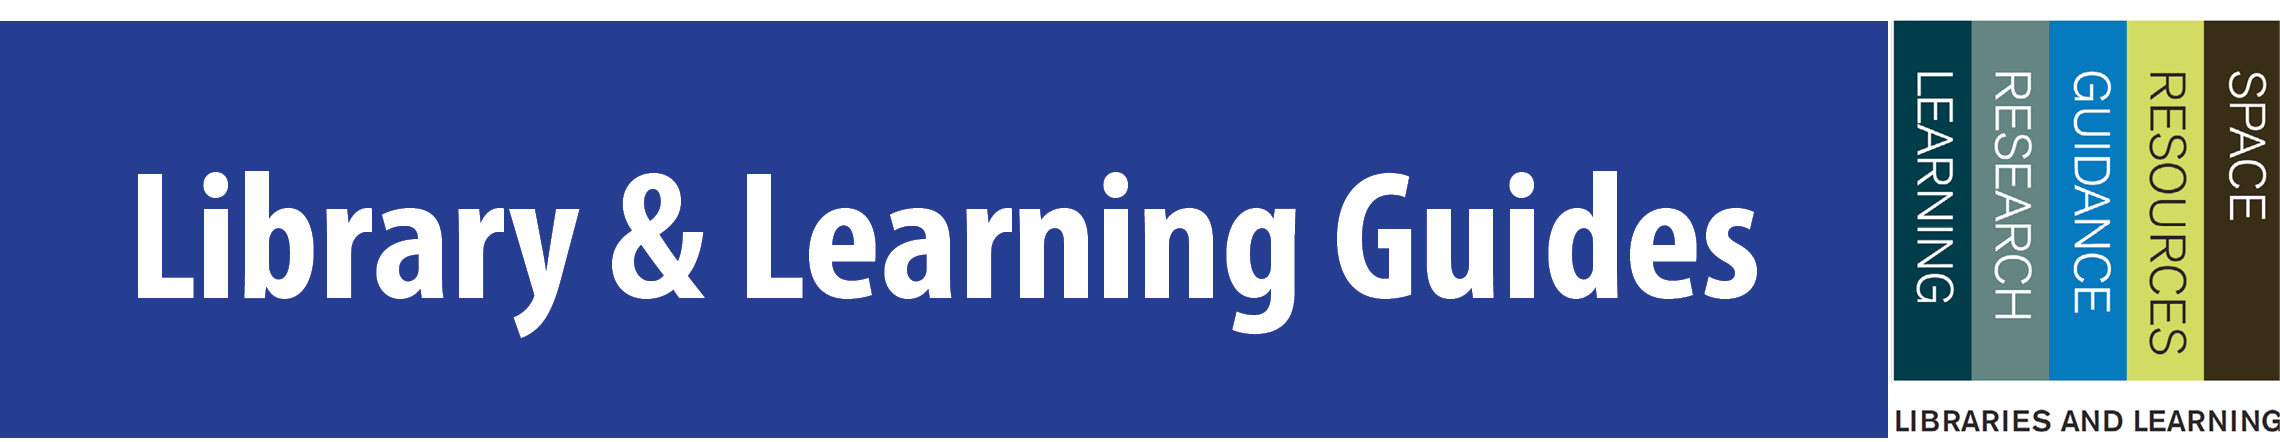 Library and Learning Services Banner